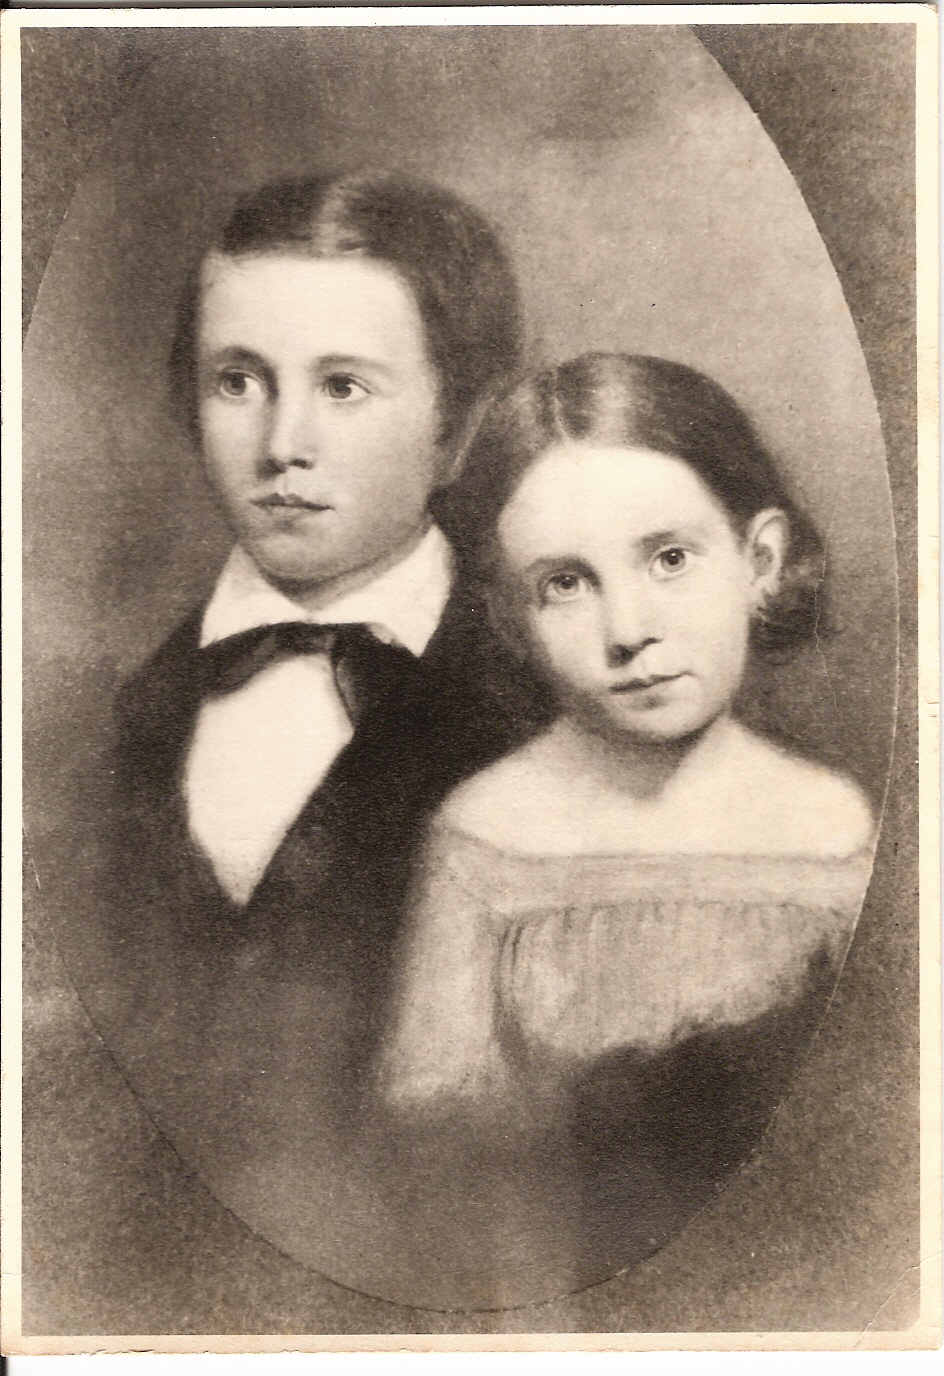 David and Fanny Benedict